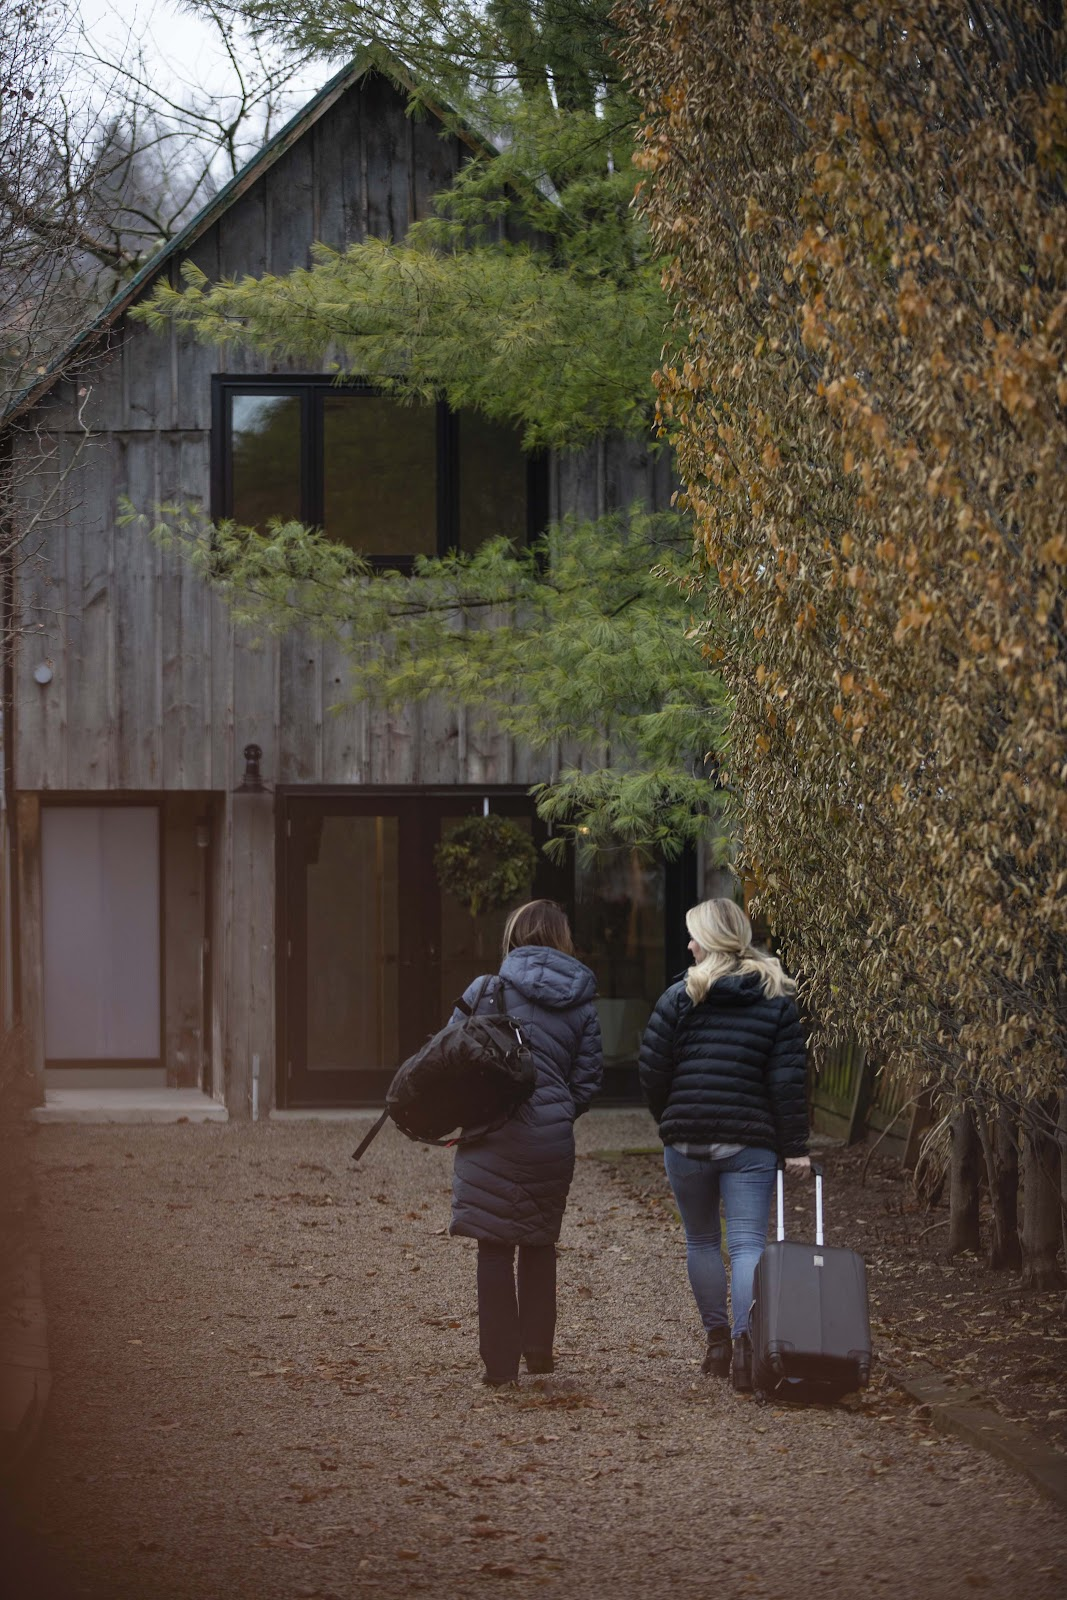 two women with suitcases going towards a wooden house